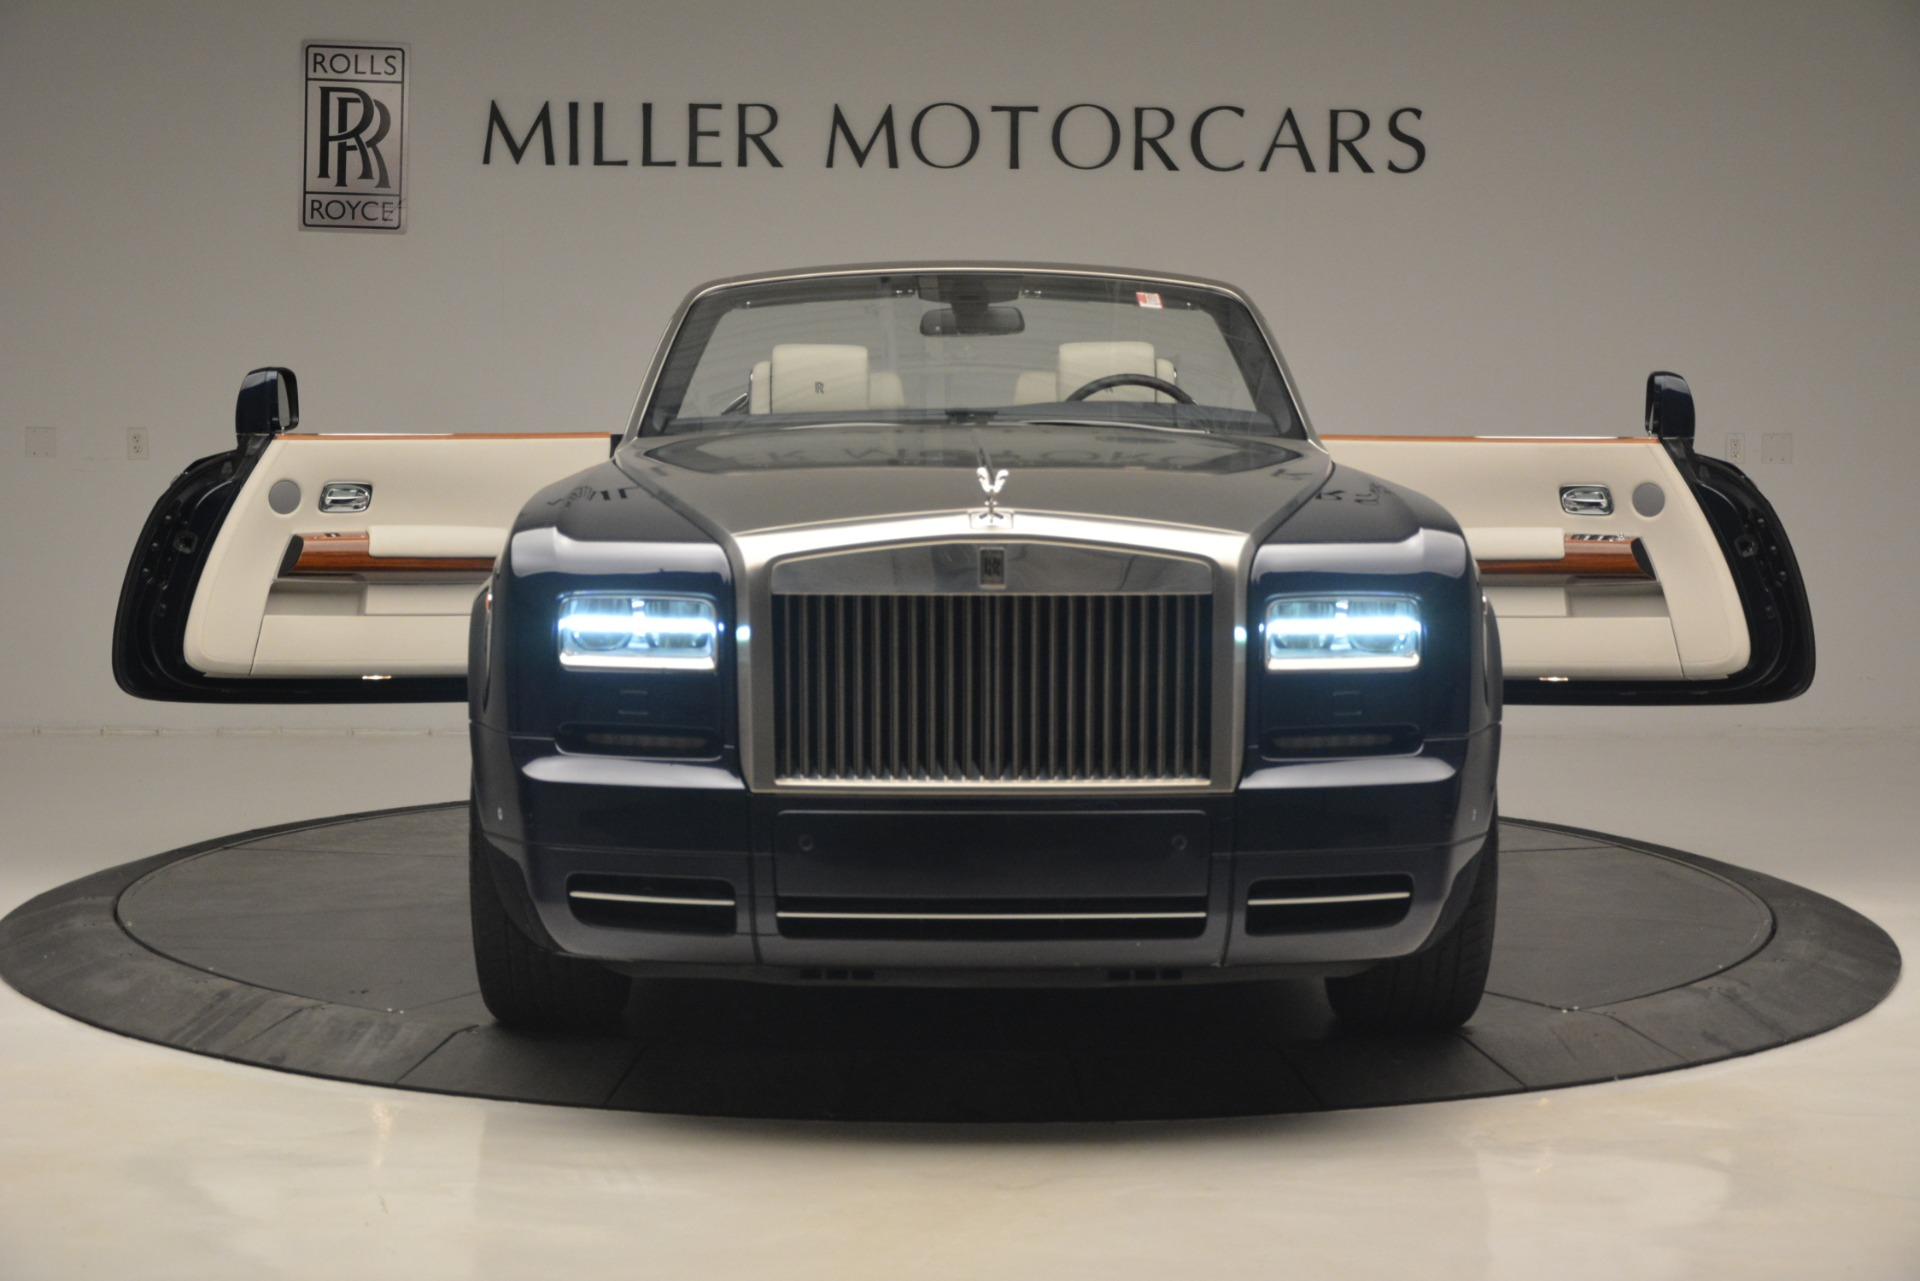 Used 2013 Rolls-Royce Phantom Drophead Coupe  For Sale In Westport, CT 2999_p29